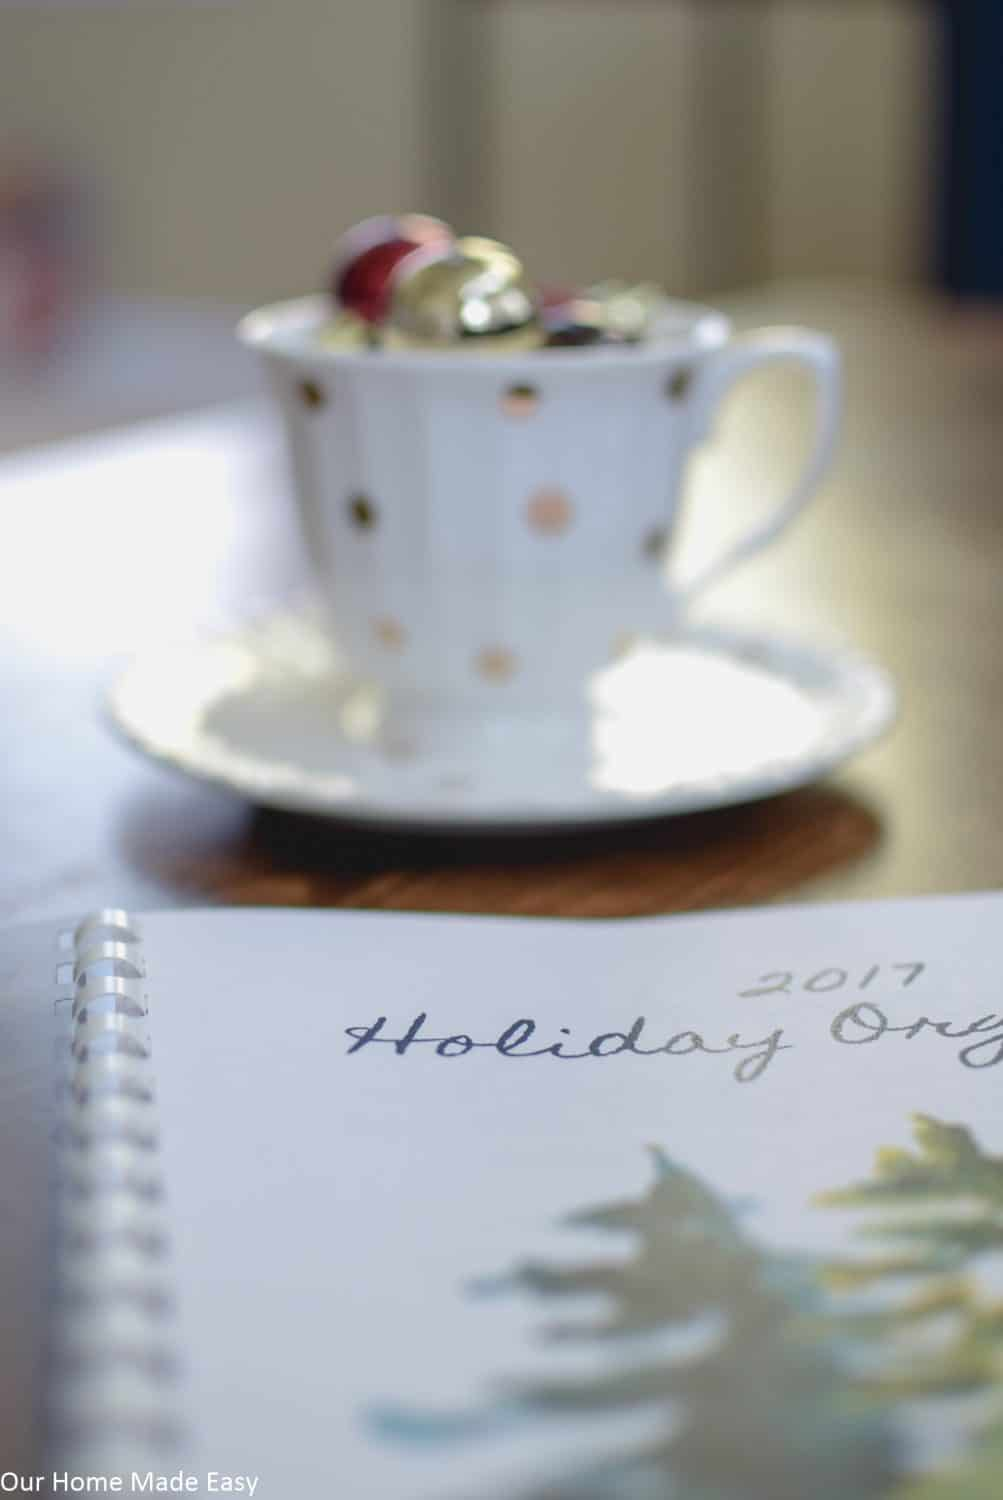 Keep your holidays stress-free with our free printable Holiday planner!